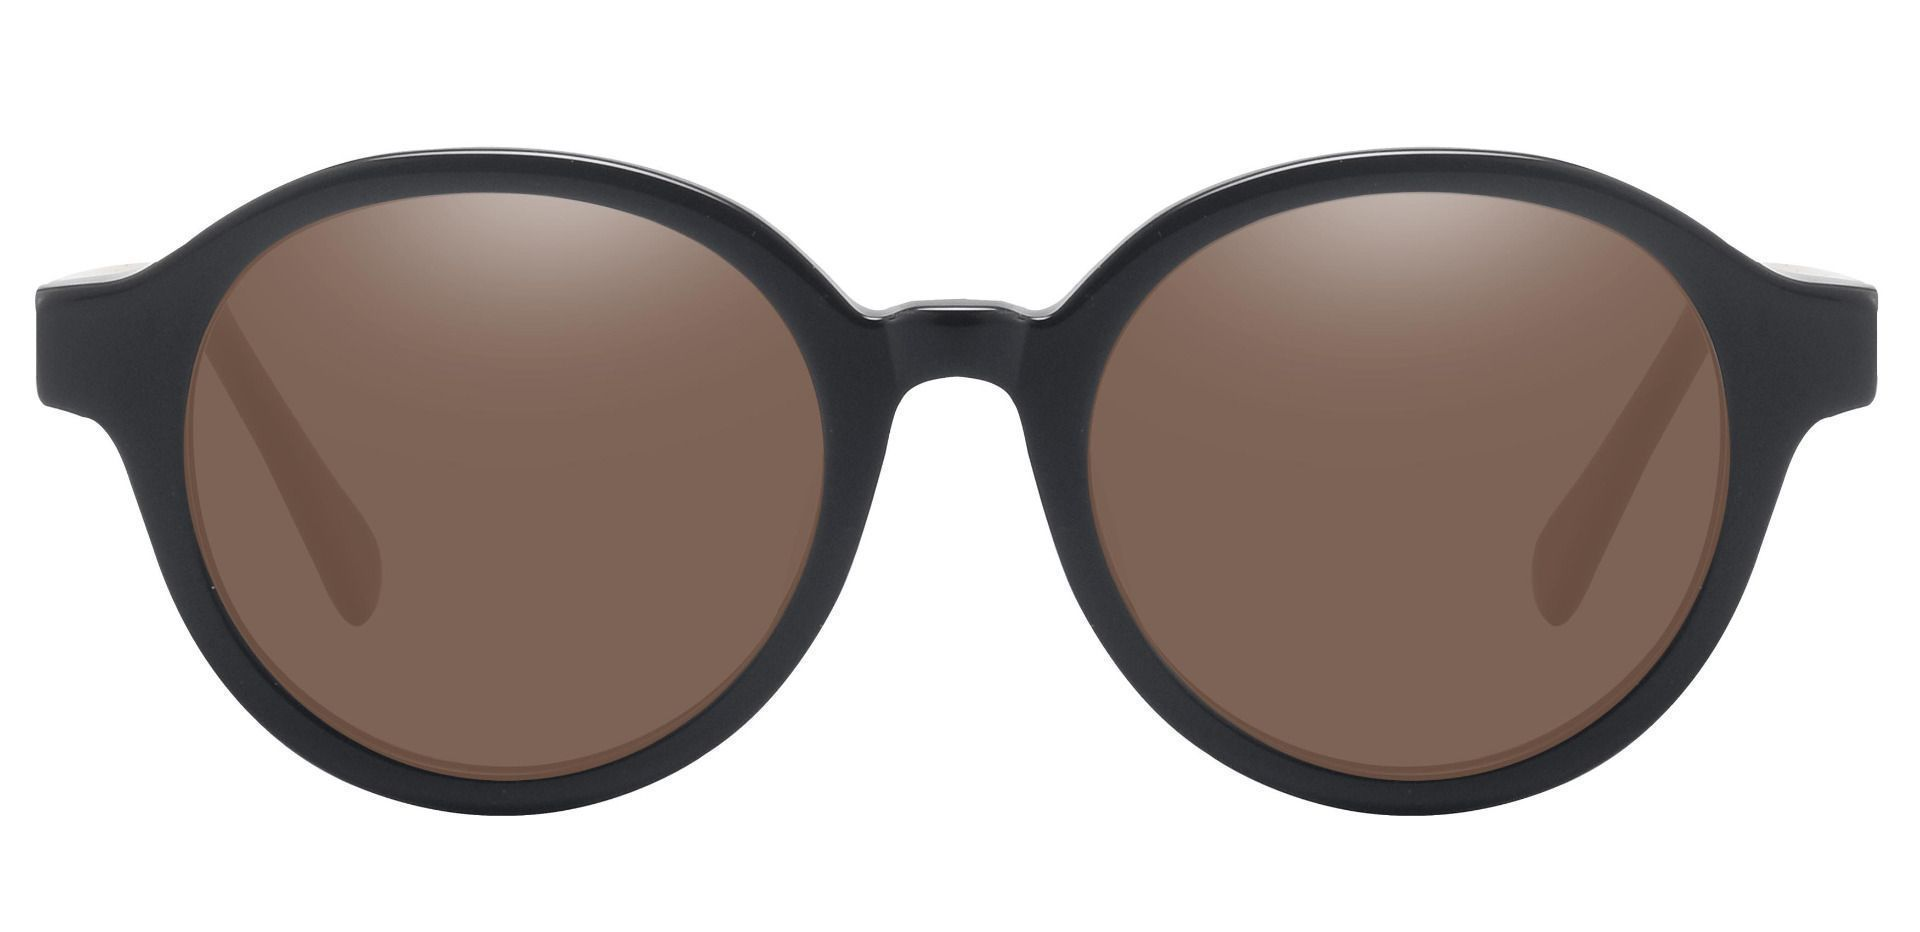 Steel City Round Reading Sunglasses - Black Frame With Brown Lenses